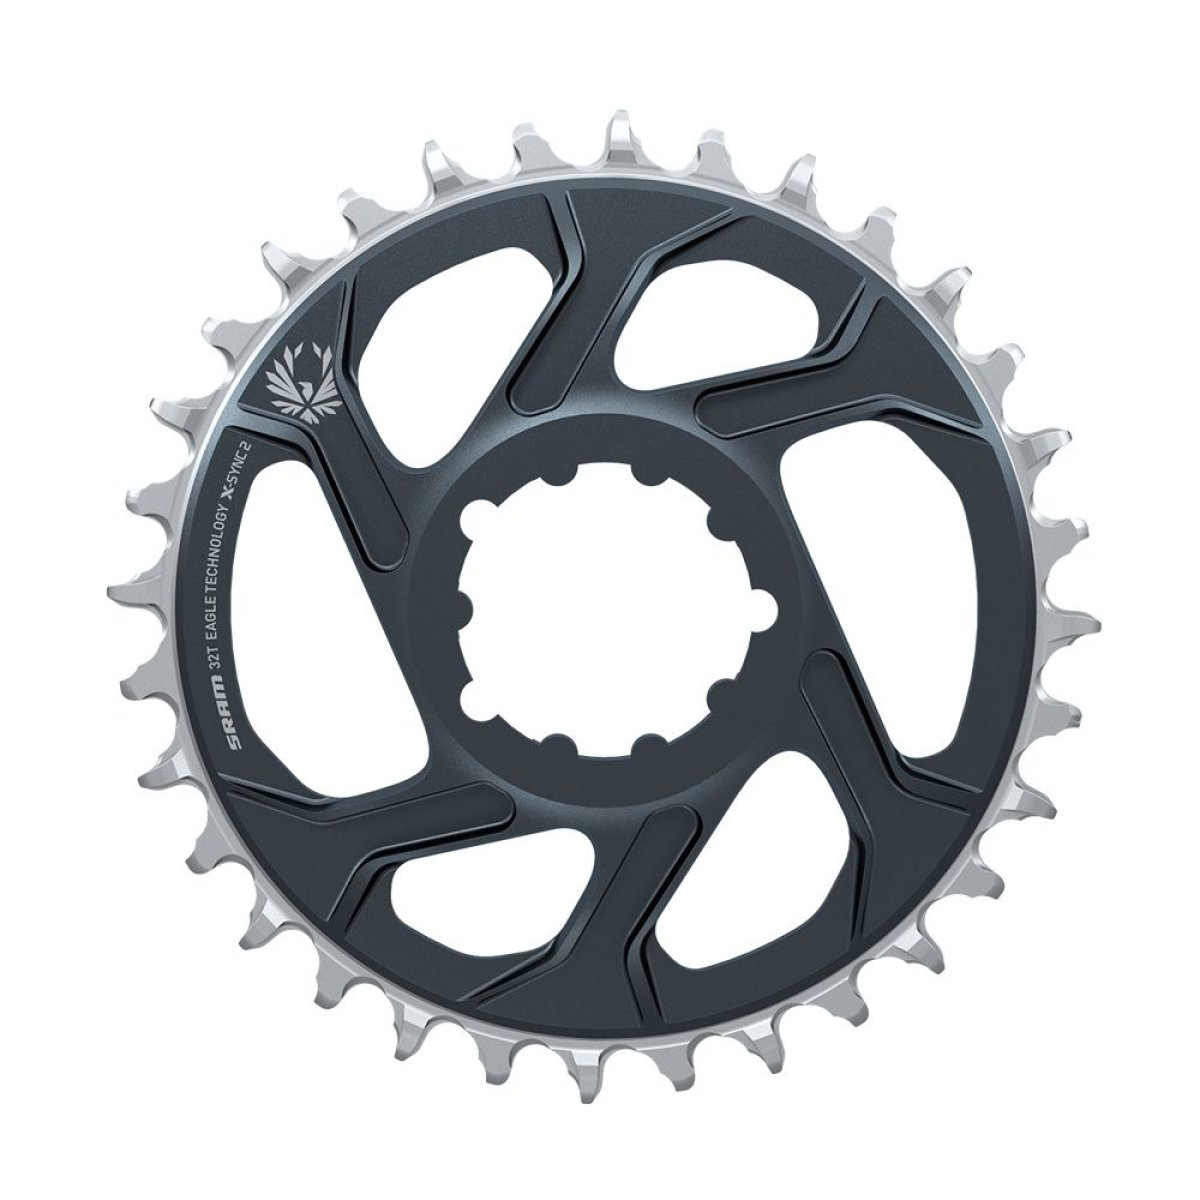 Звезда Sram X-SYNC 2 Direct Mount 6mm Offset Eagle Lunar/Polar Grey 11.6218.047.004, 11.6218.047.001, 11.6218.047.003, 11.6218.047.002